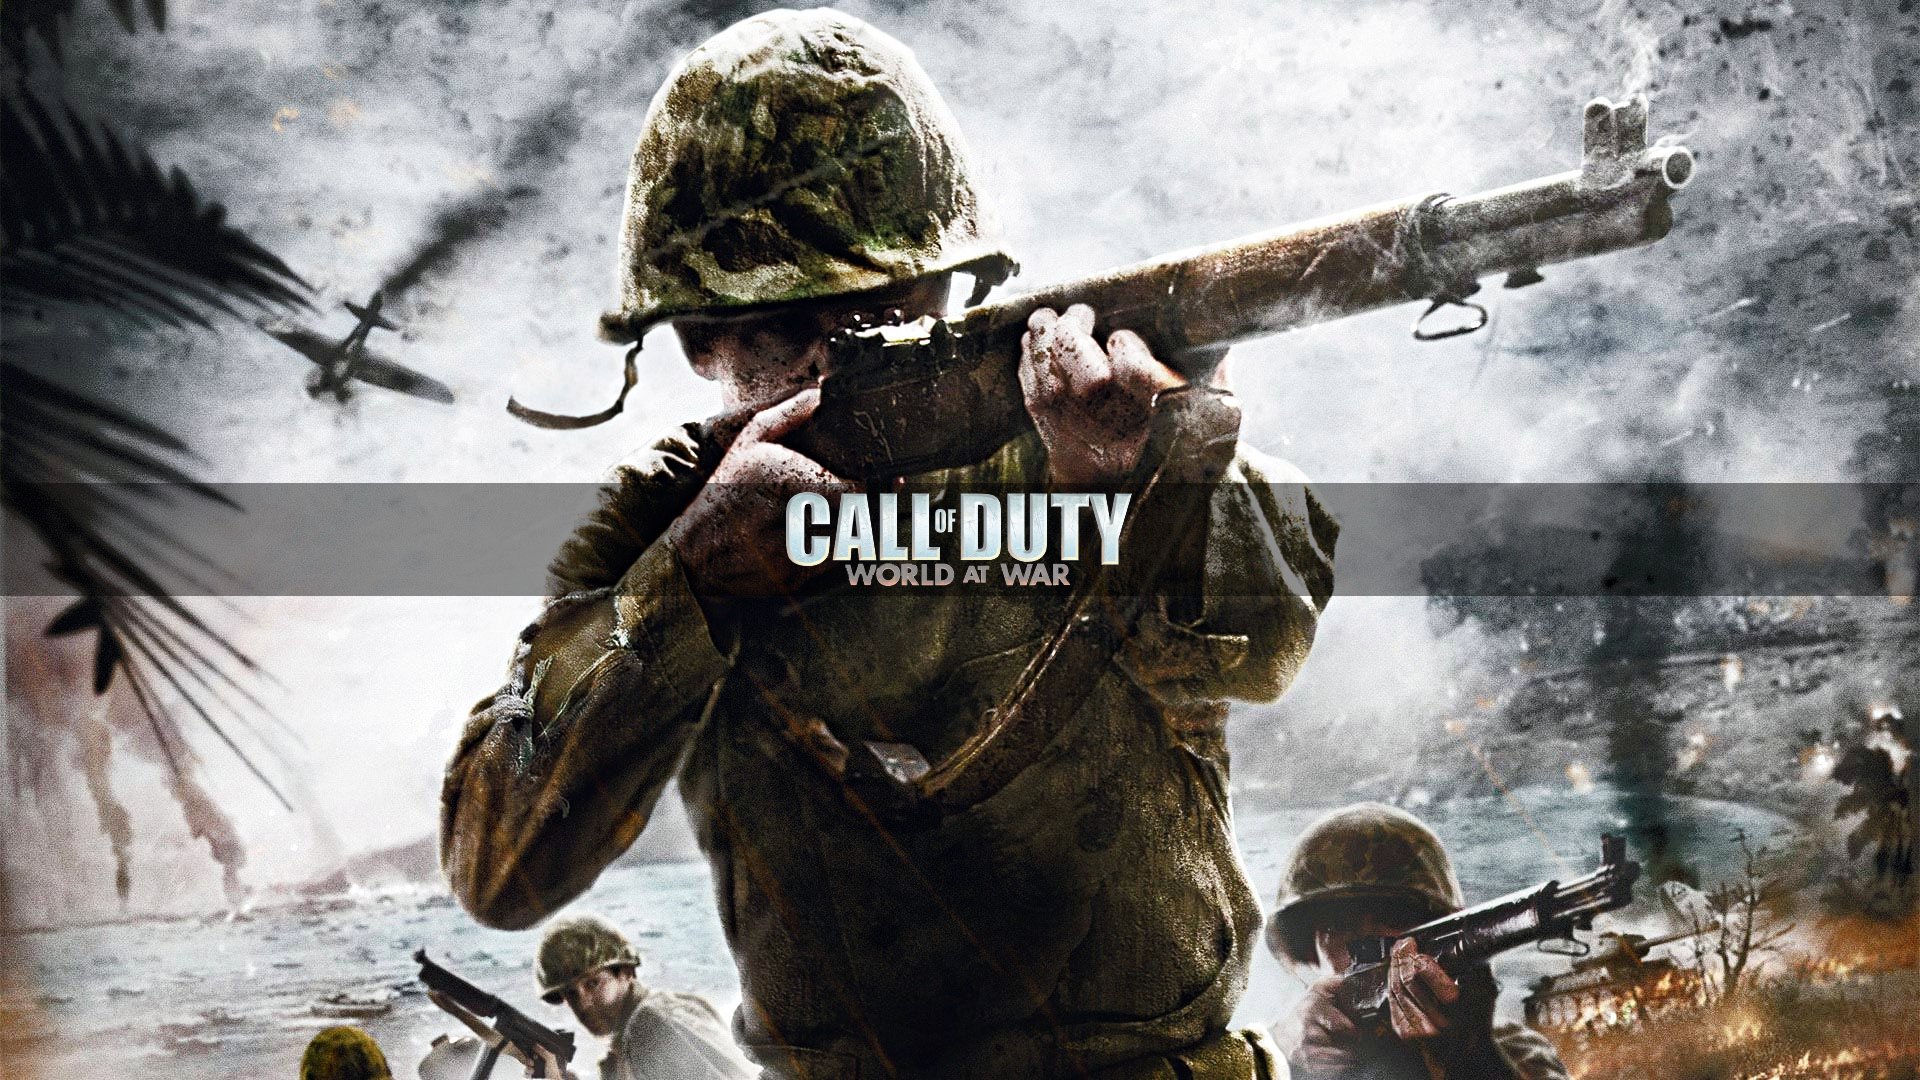 Free Download 9994 Cod 2 Wallpaper 1920x1080 For Your